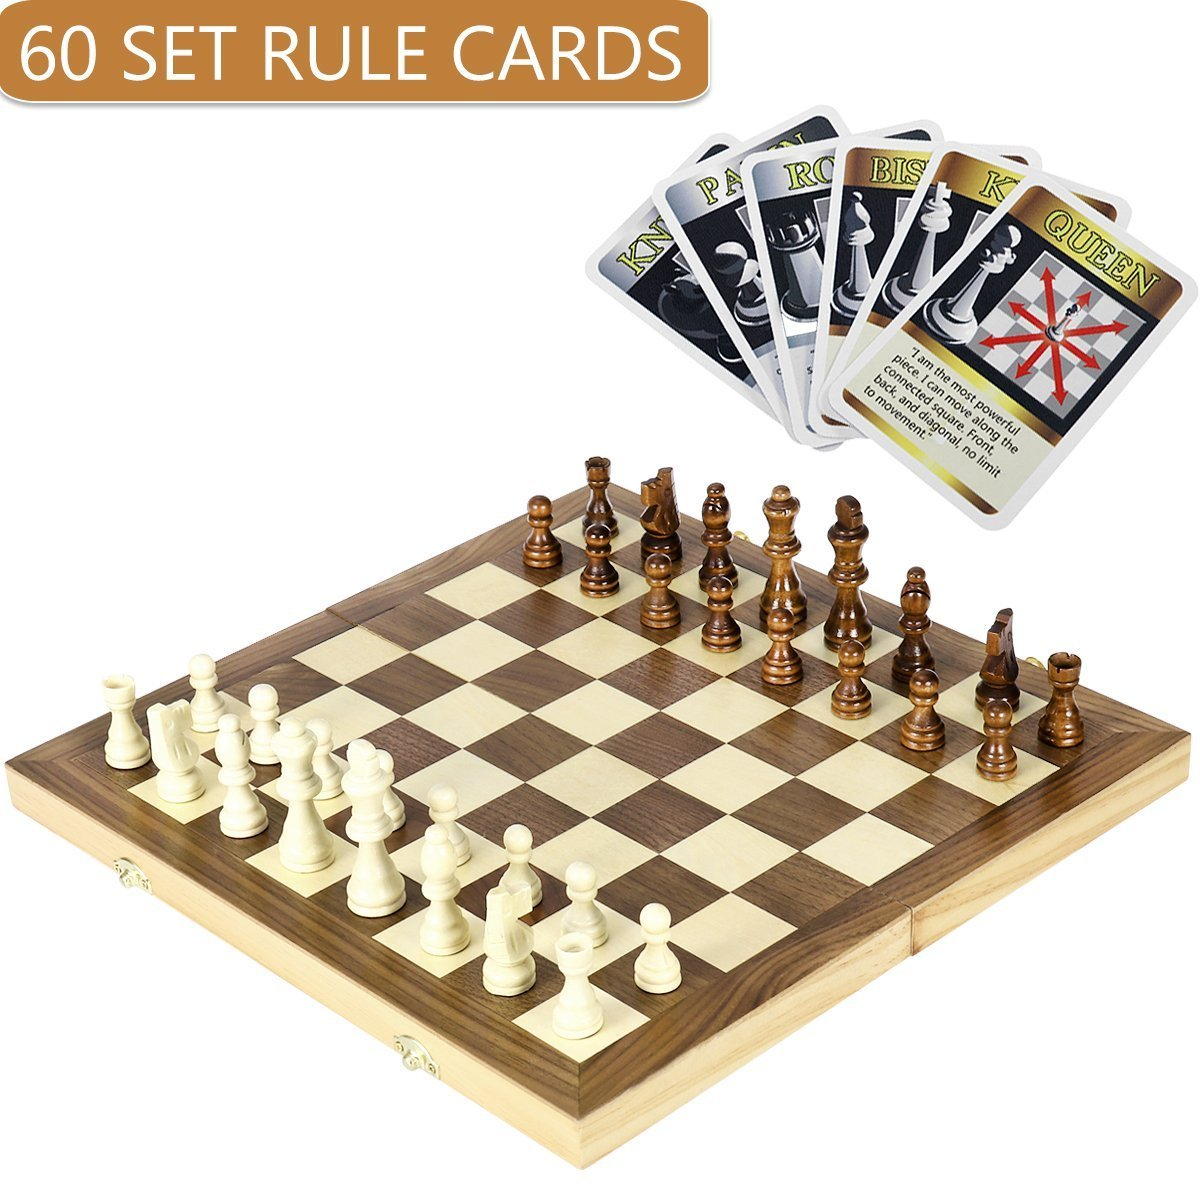 """iBaseToy Folding Wooden Chess Set with 60 Game Rules Cards for Adults Kids Beginners Large Chess Board - 15'' x 15'' x 1"""""""